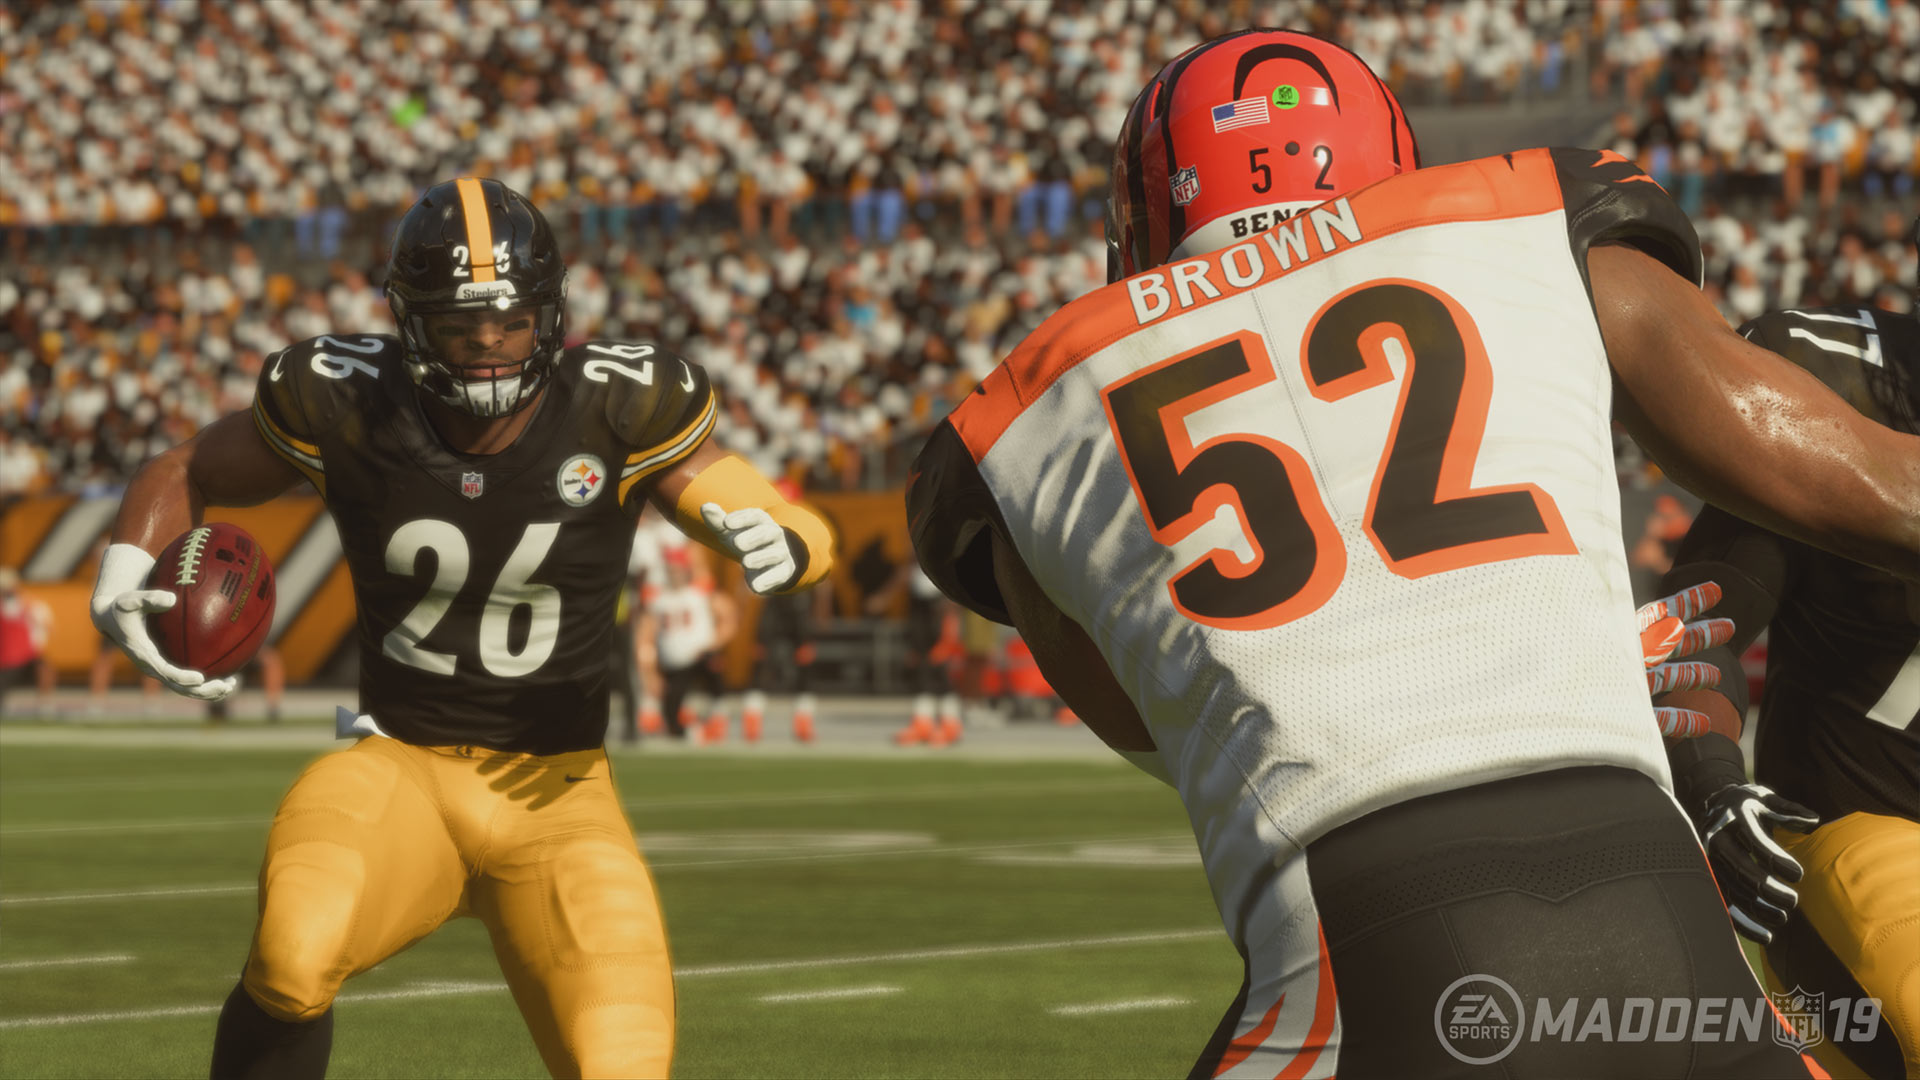 Madden NFL 19 Playstation 4 Screenshot